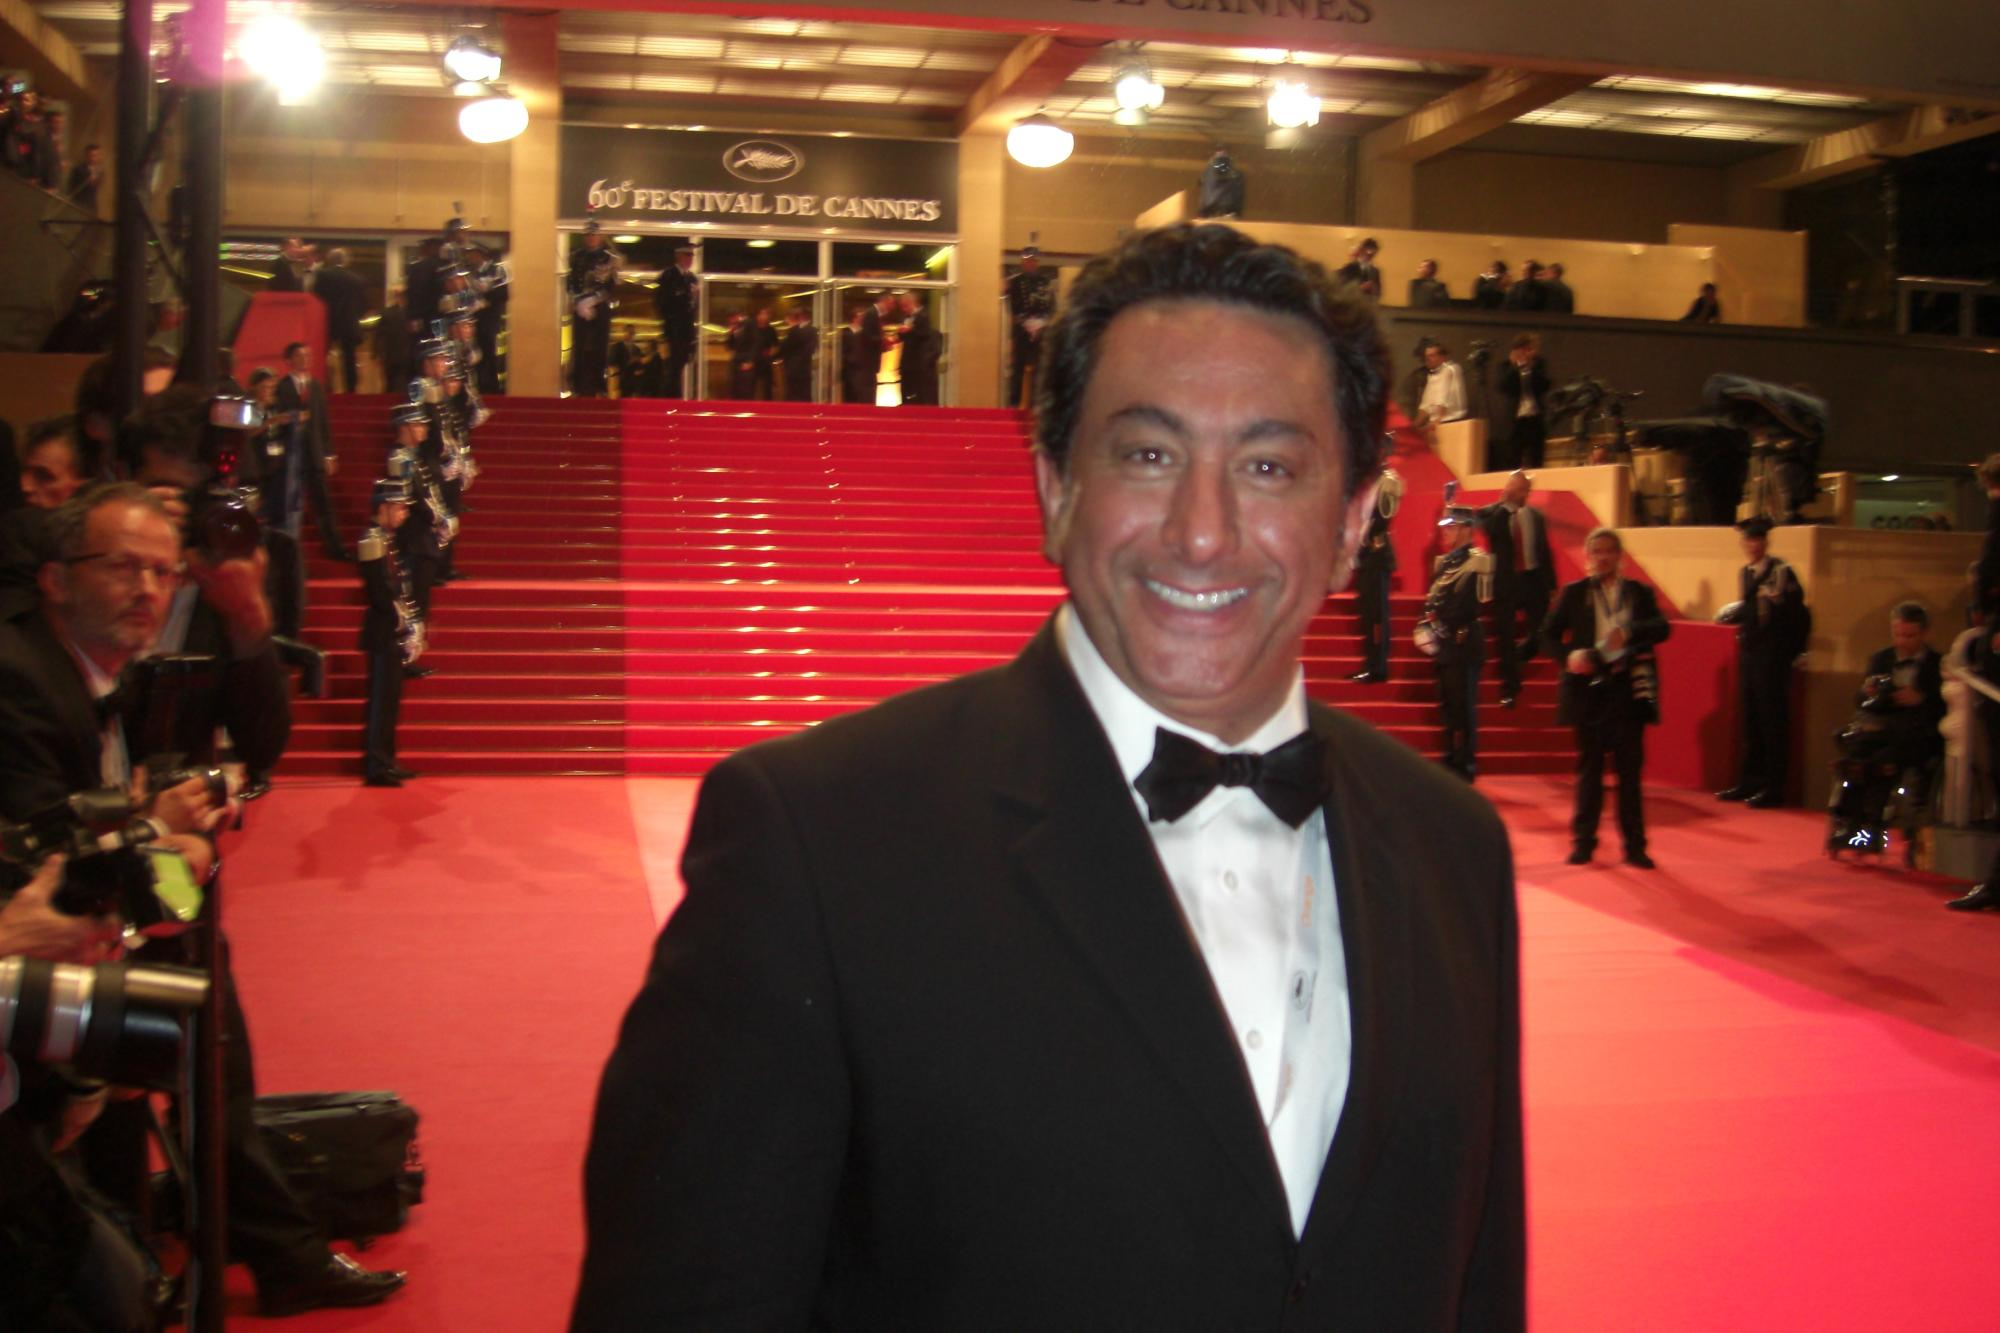 60th_Cannes_film_festival_2007_130.jpg